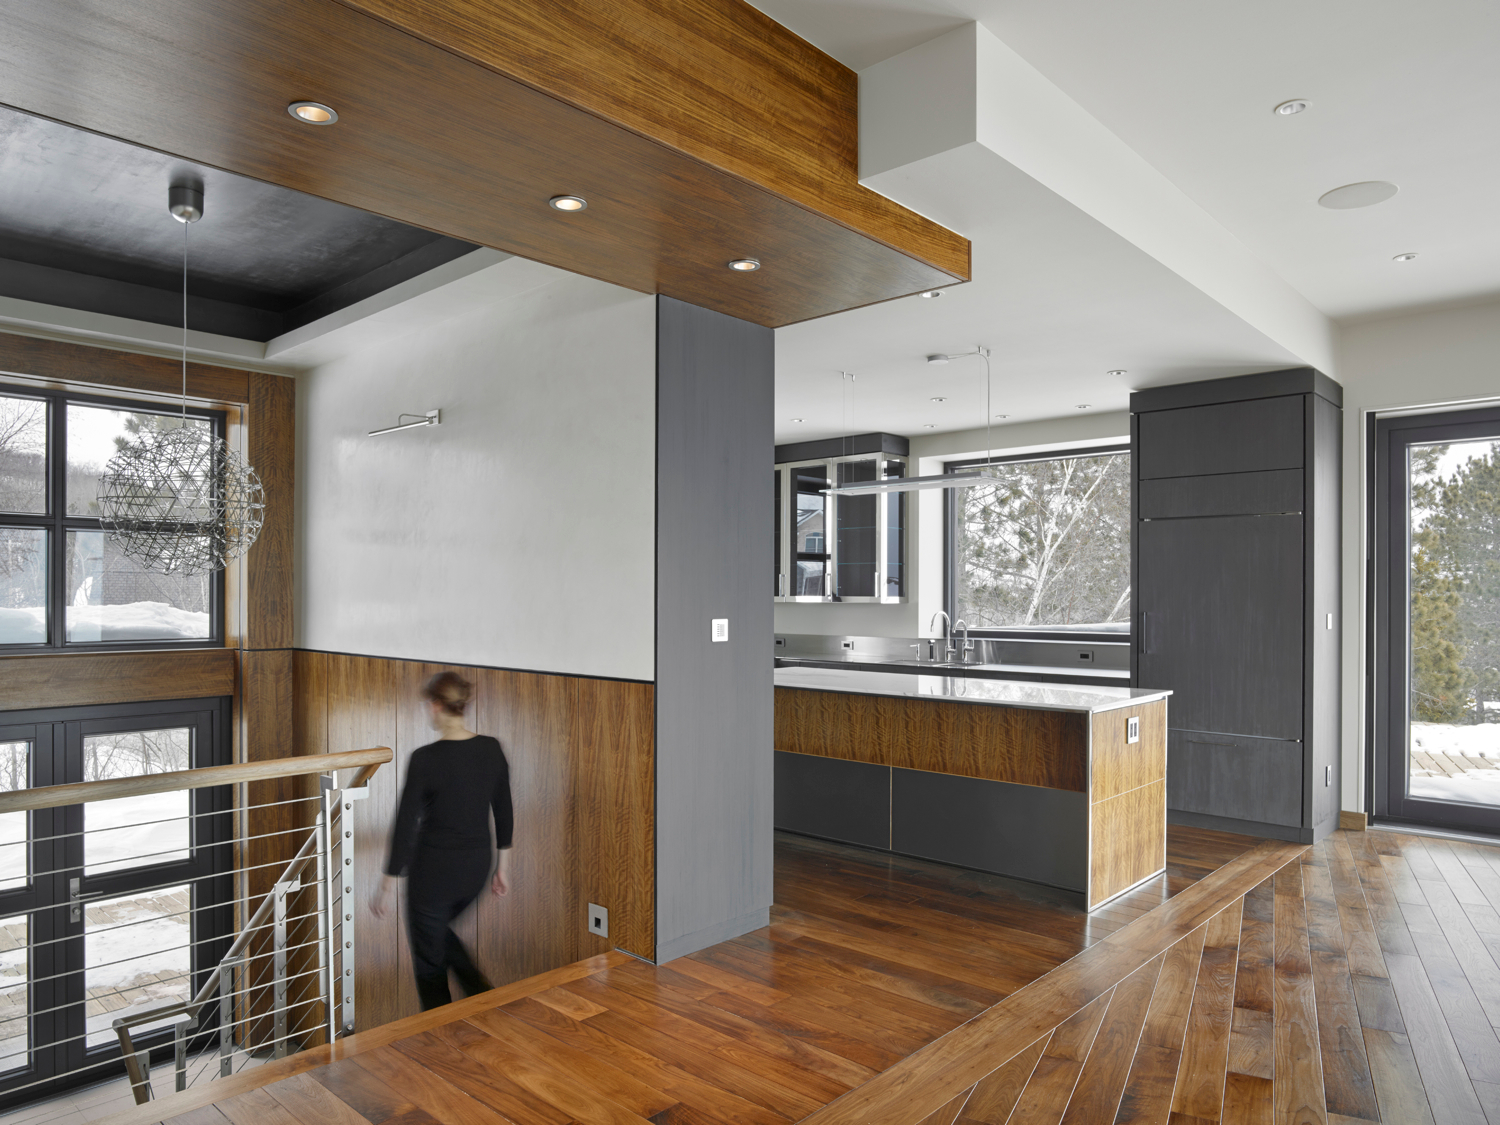 Pays d'en Haut_Carly Coulson Architect_Bruce Damonte Photographer_Kitchen Entry